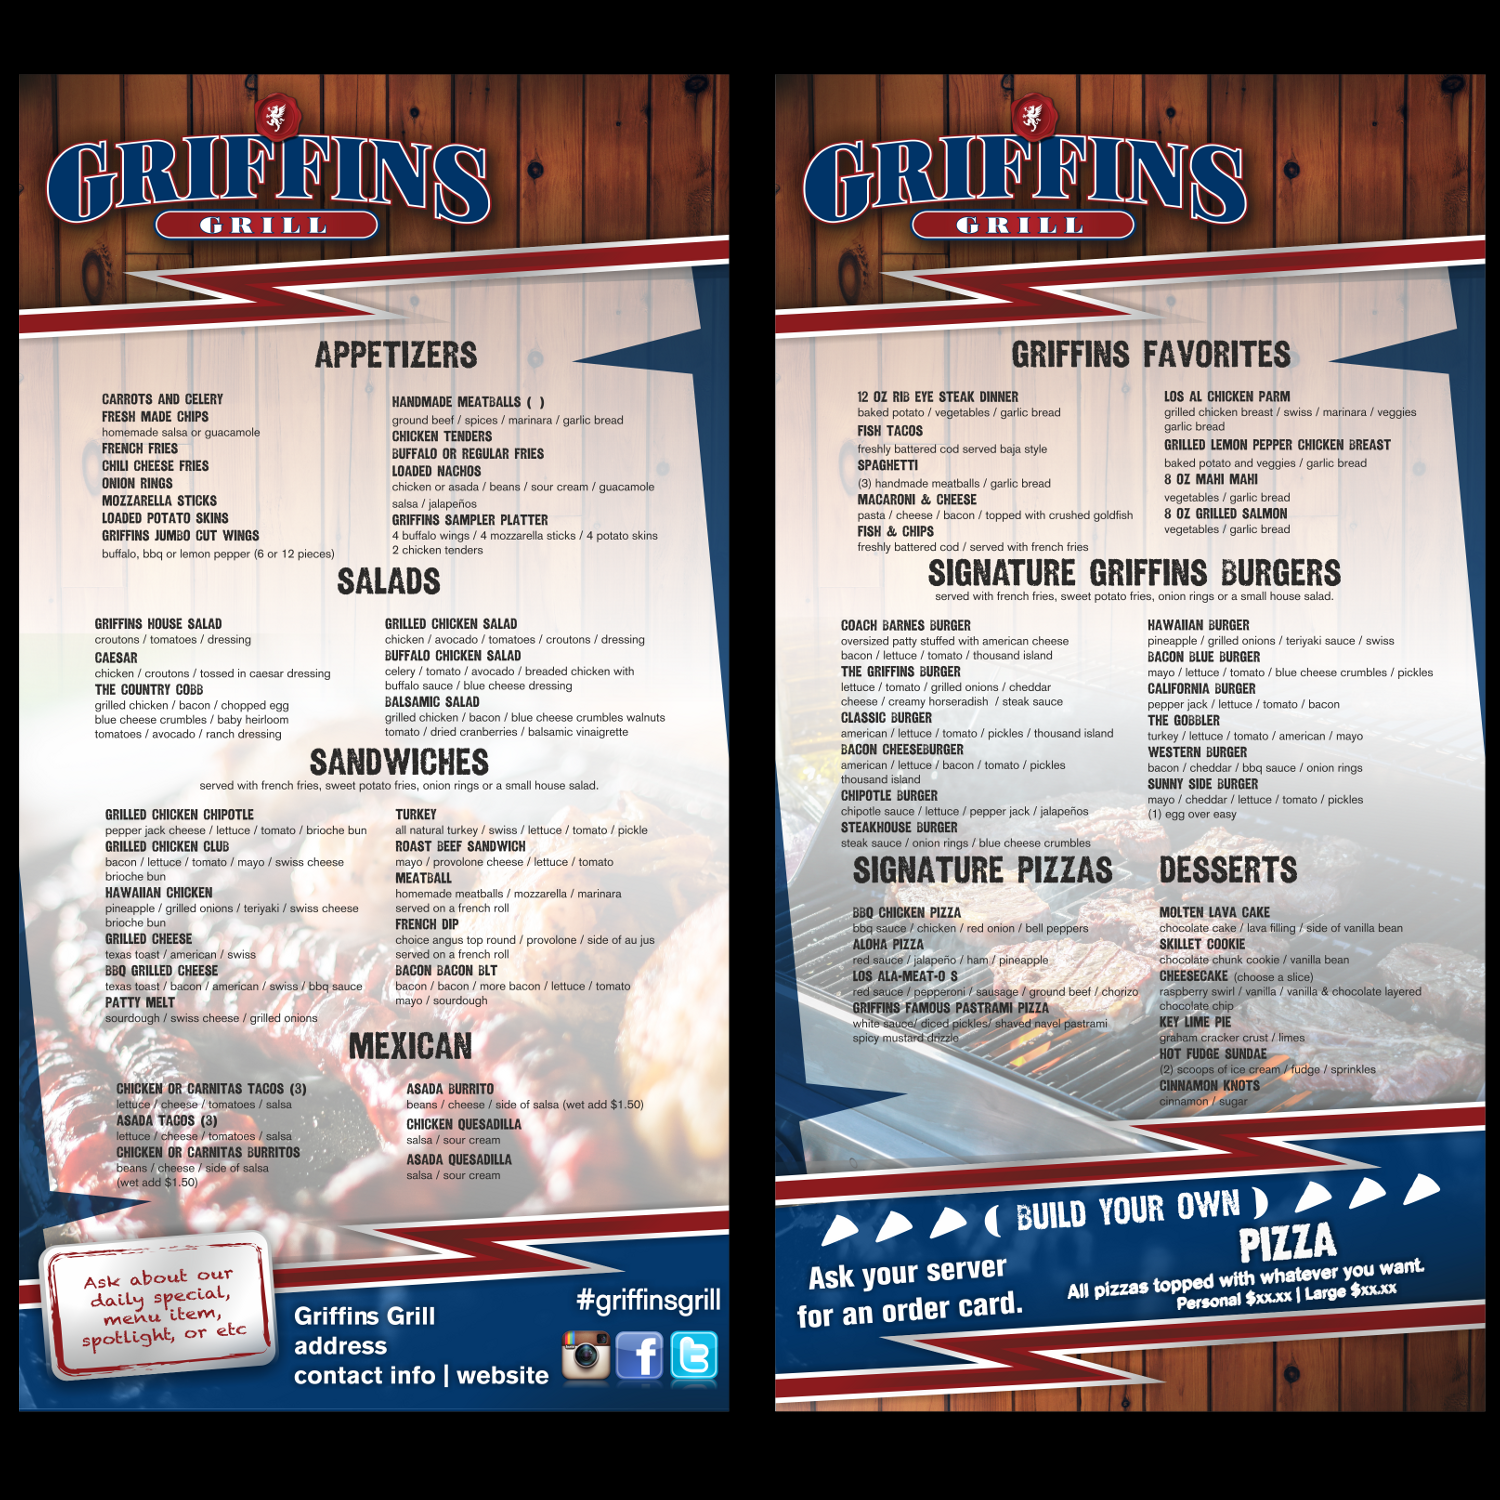 personable, colorful, sports bar menu design for a company by